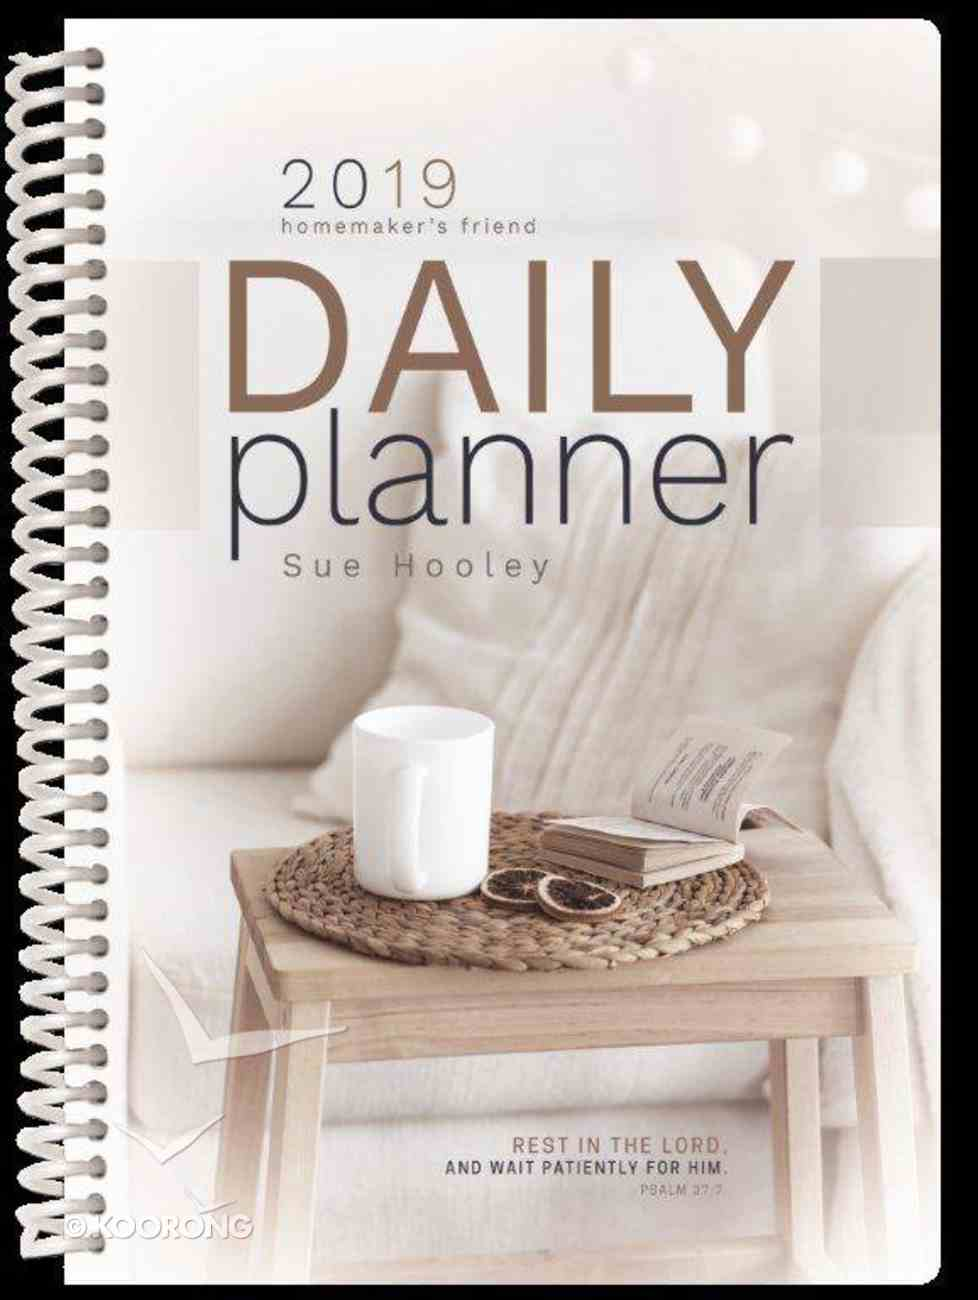 2019 Daily Diary/Planner: The Homemaker's Friend Spiral